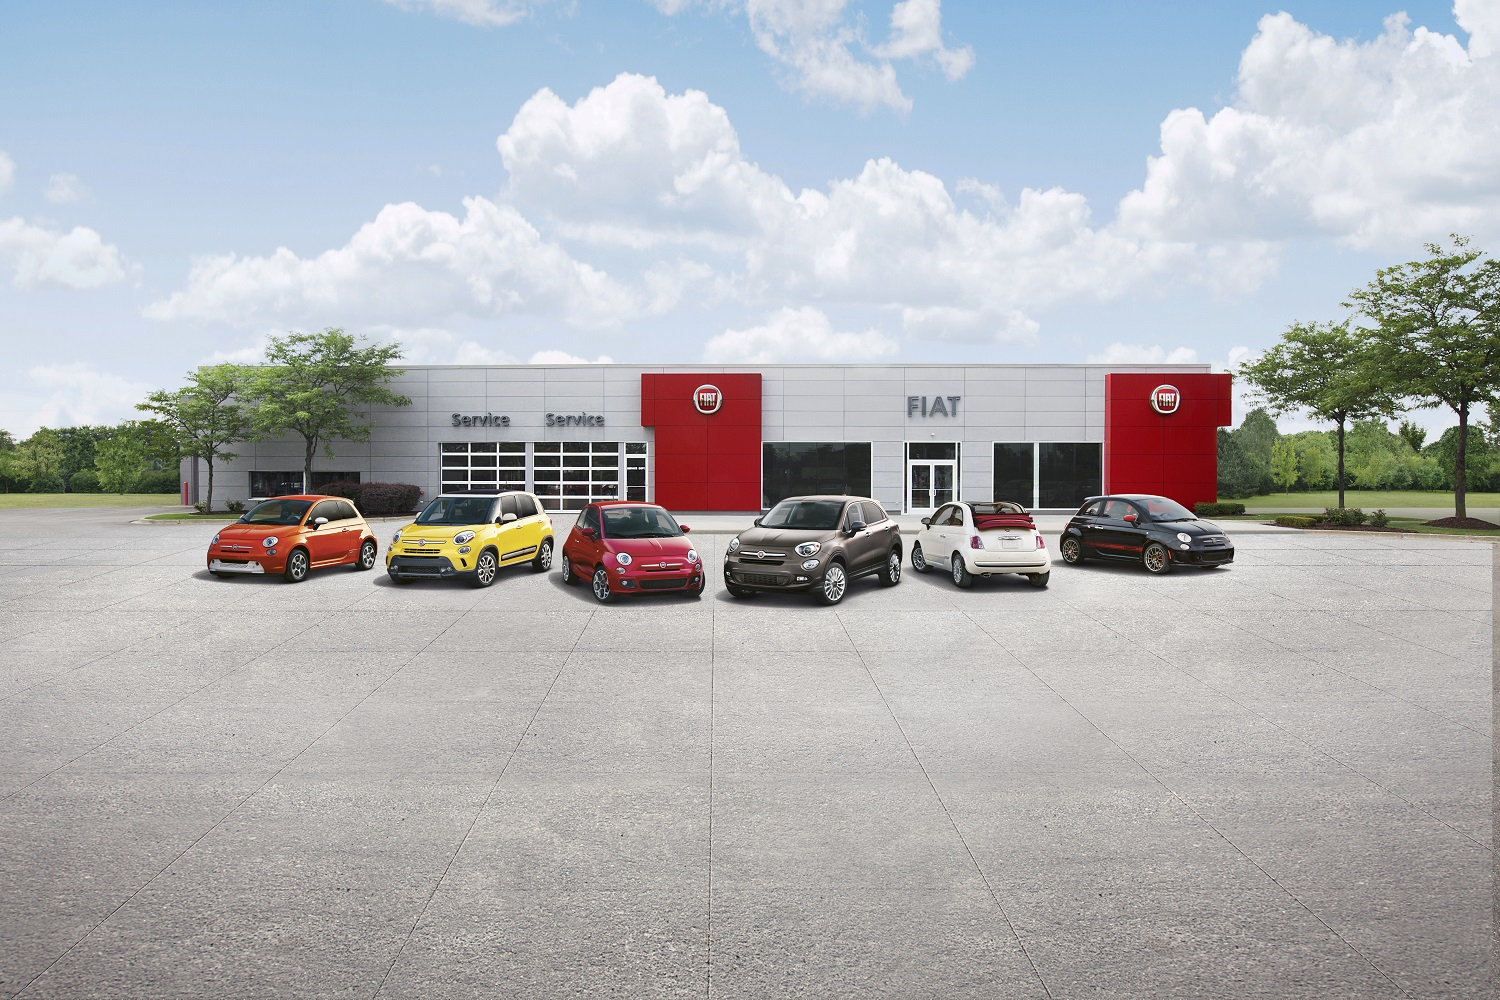 FIATs available in Reading, PA at Lancaster Dodge Ram FIAT (Reading, PA)